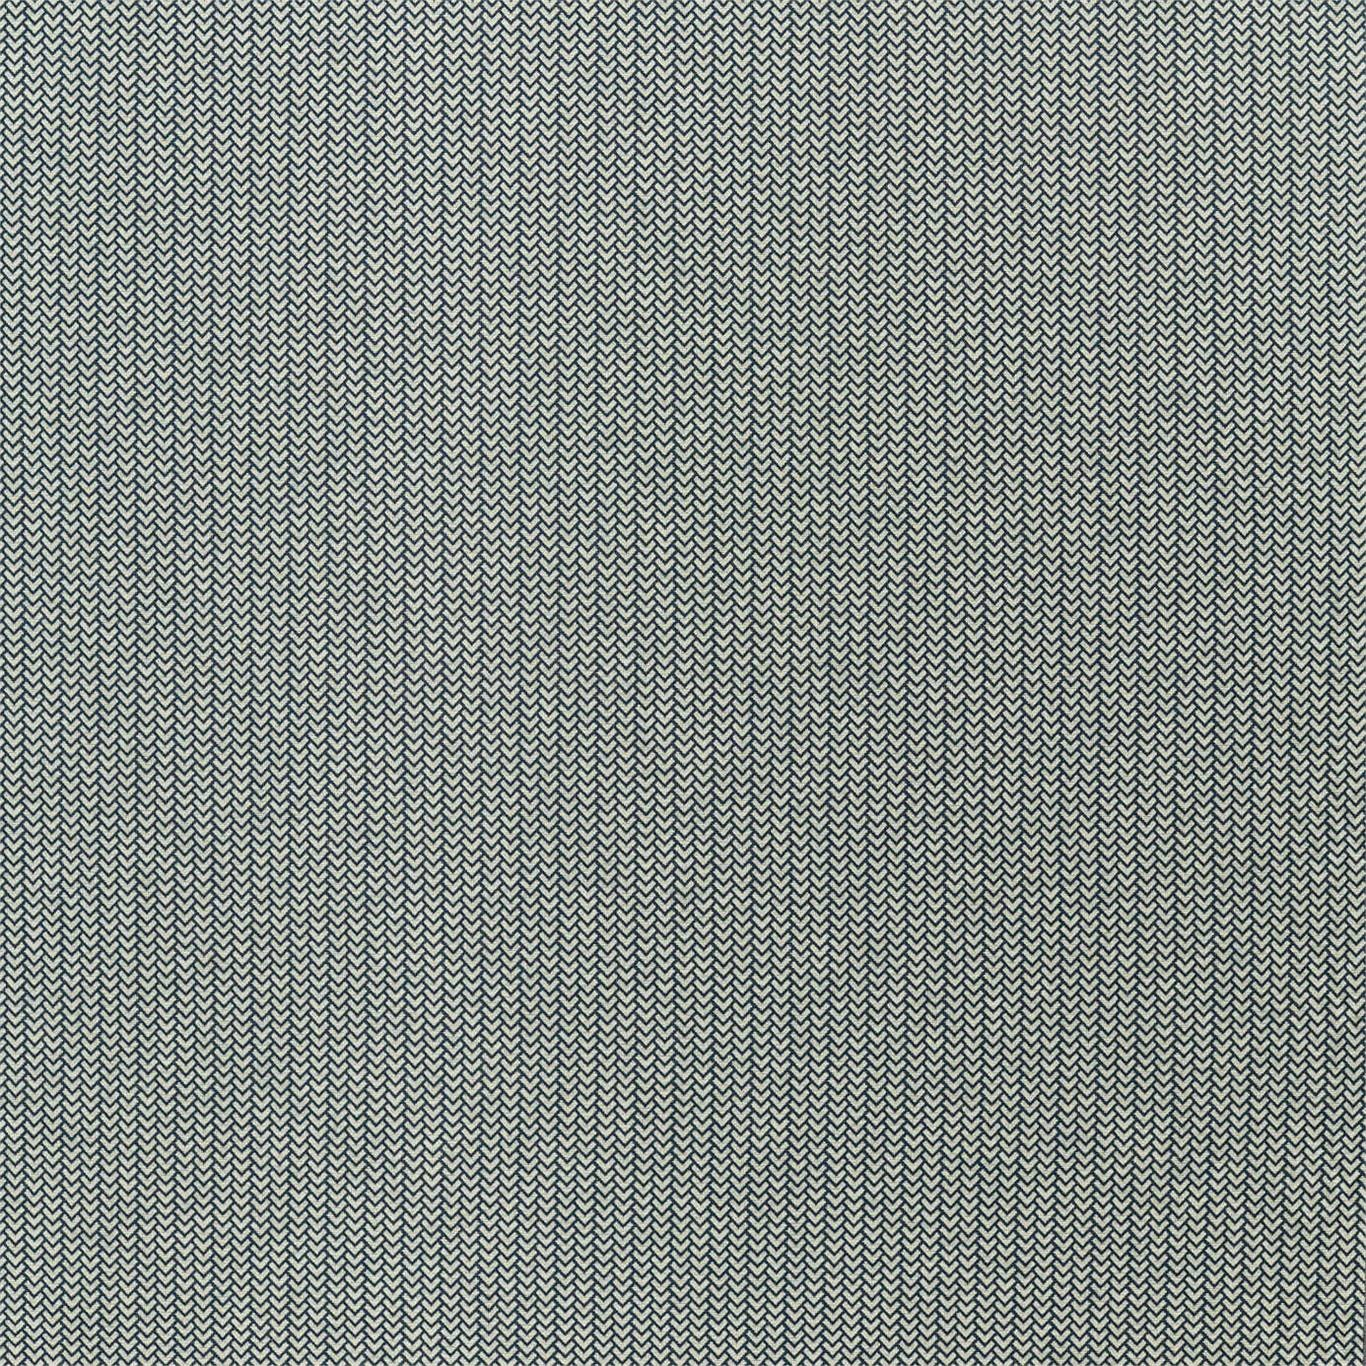 Image of Harlequin Sanara Indigo Fabric 133089